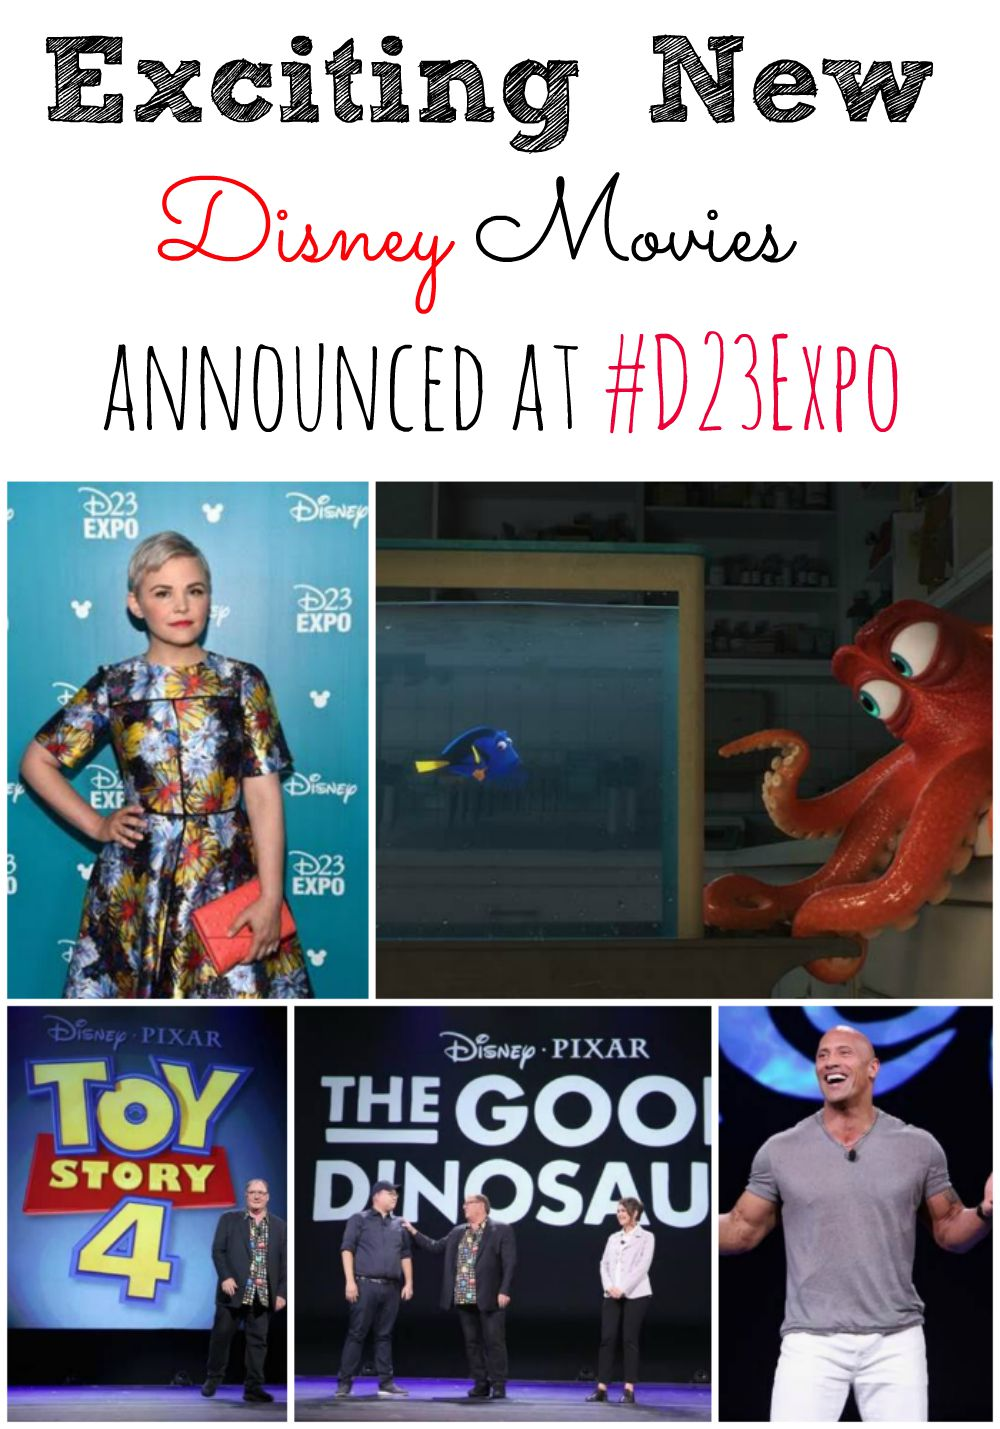 Exciting New Disney Movies Announced at #D23Expo